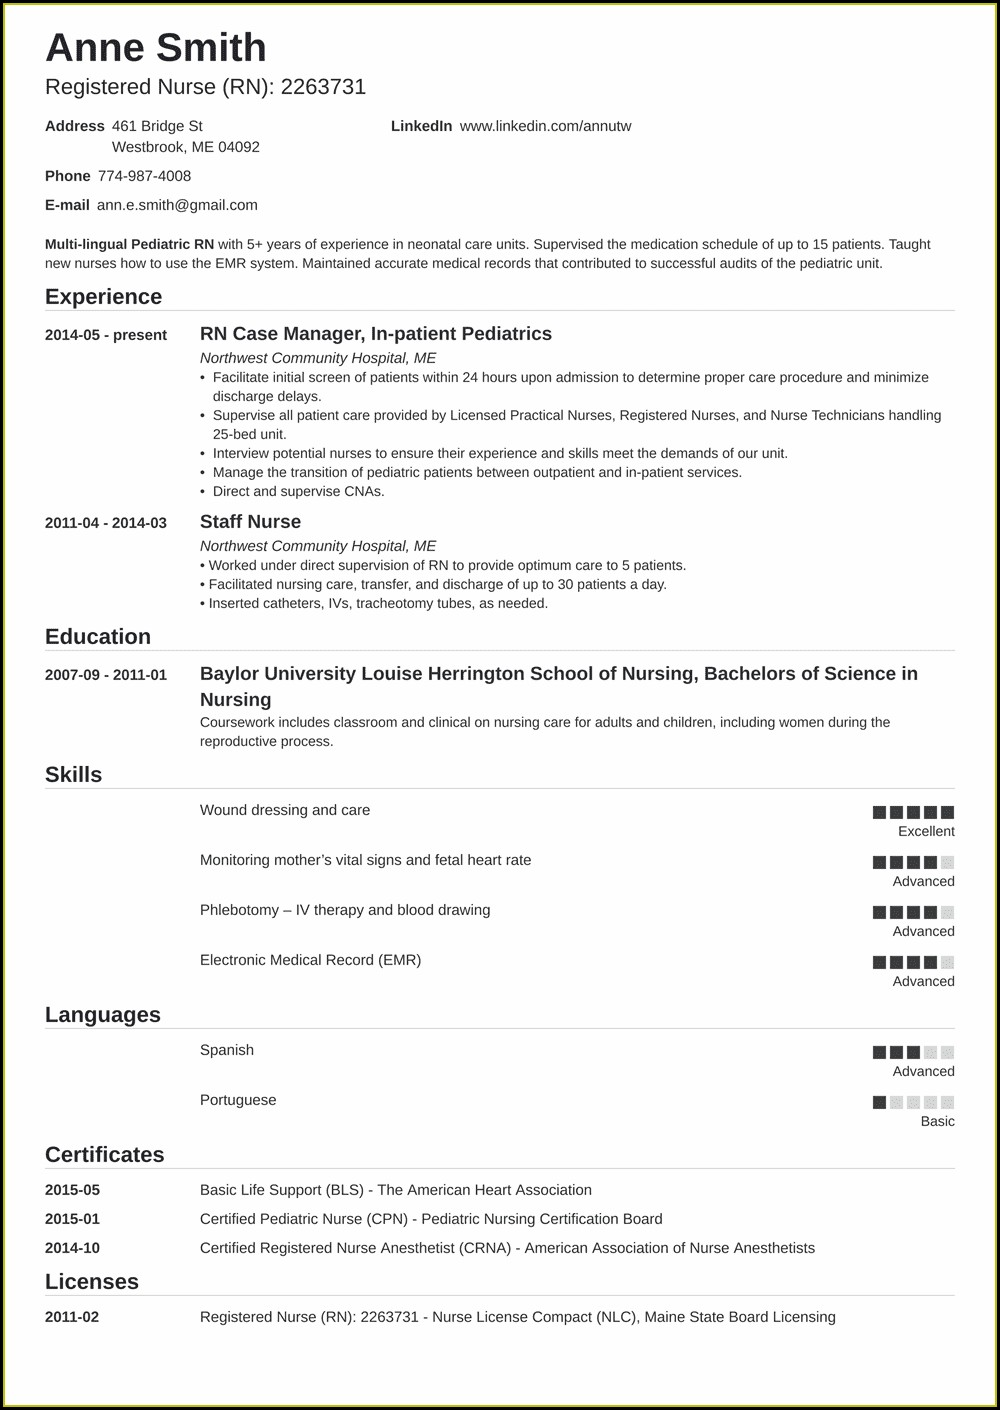 Resume For Registered Nurse